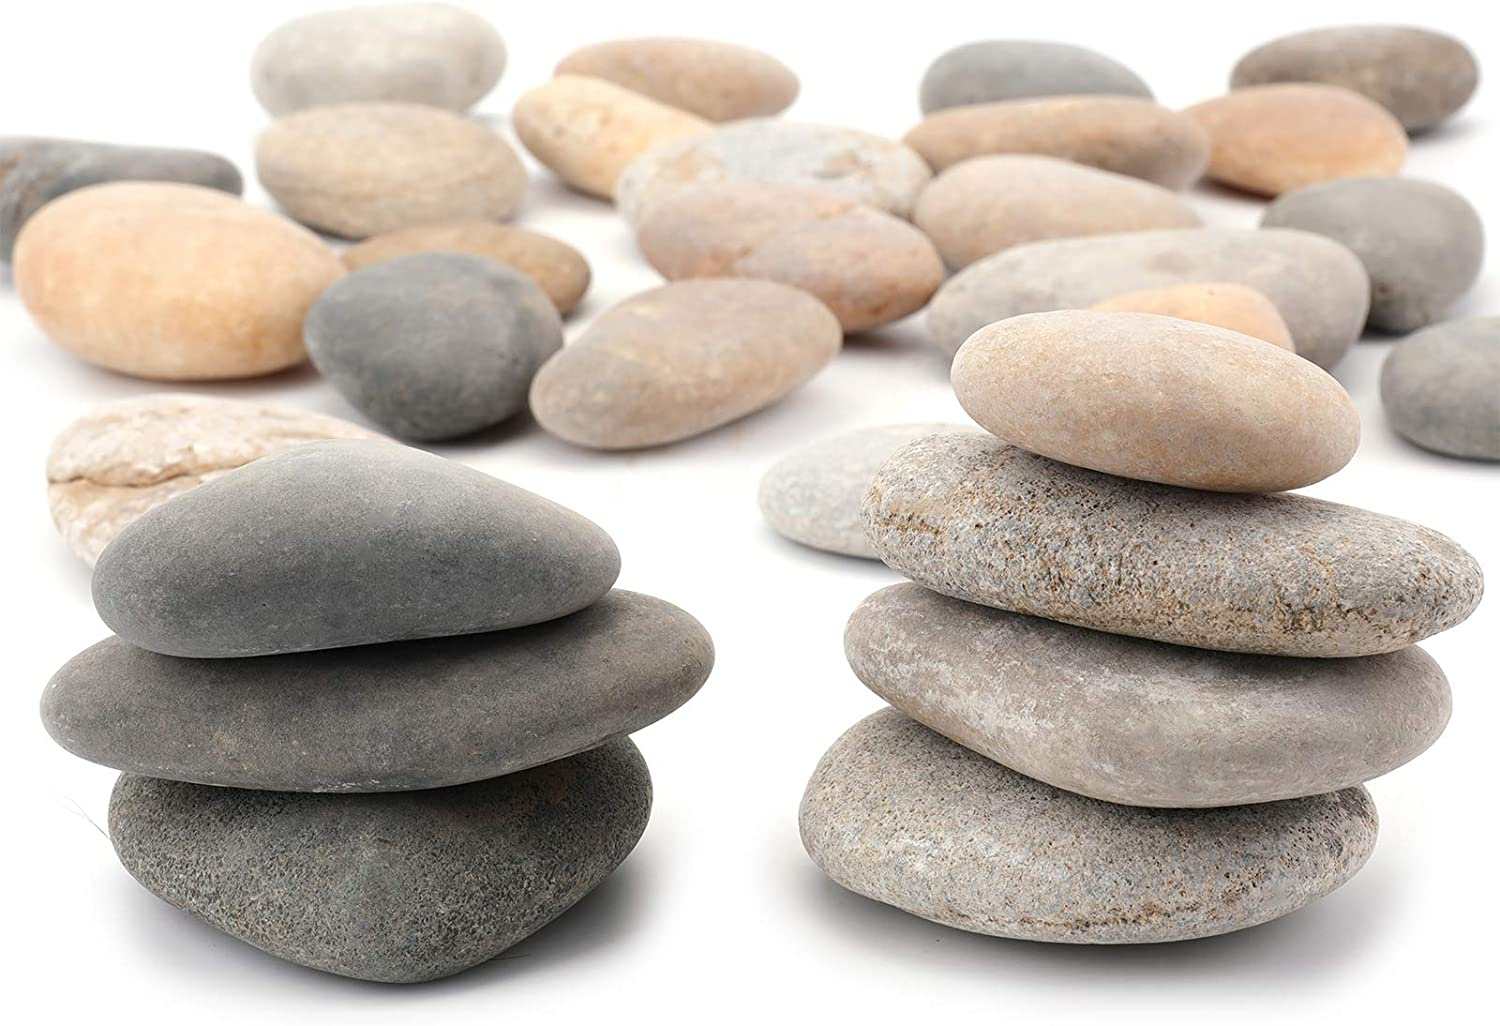 Bekith 6 Pounds 2-3 inch Rocks for Painting Kindness Rocks, River Natural Smooth Surface Arts & Crafting Rock Painting Supplies for Kid Painters, Gift for Kids and Adults Outdoor Rock Art Garden Decor